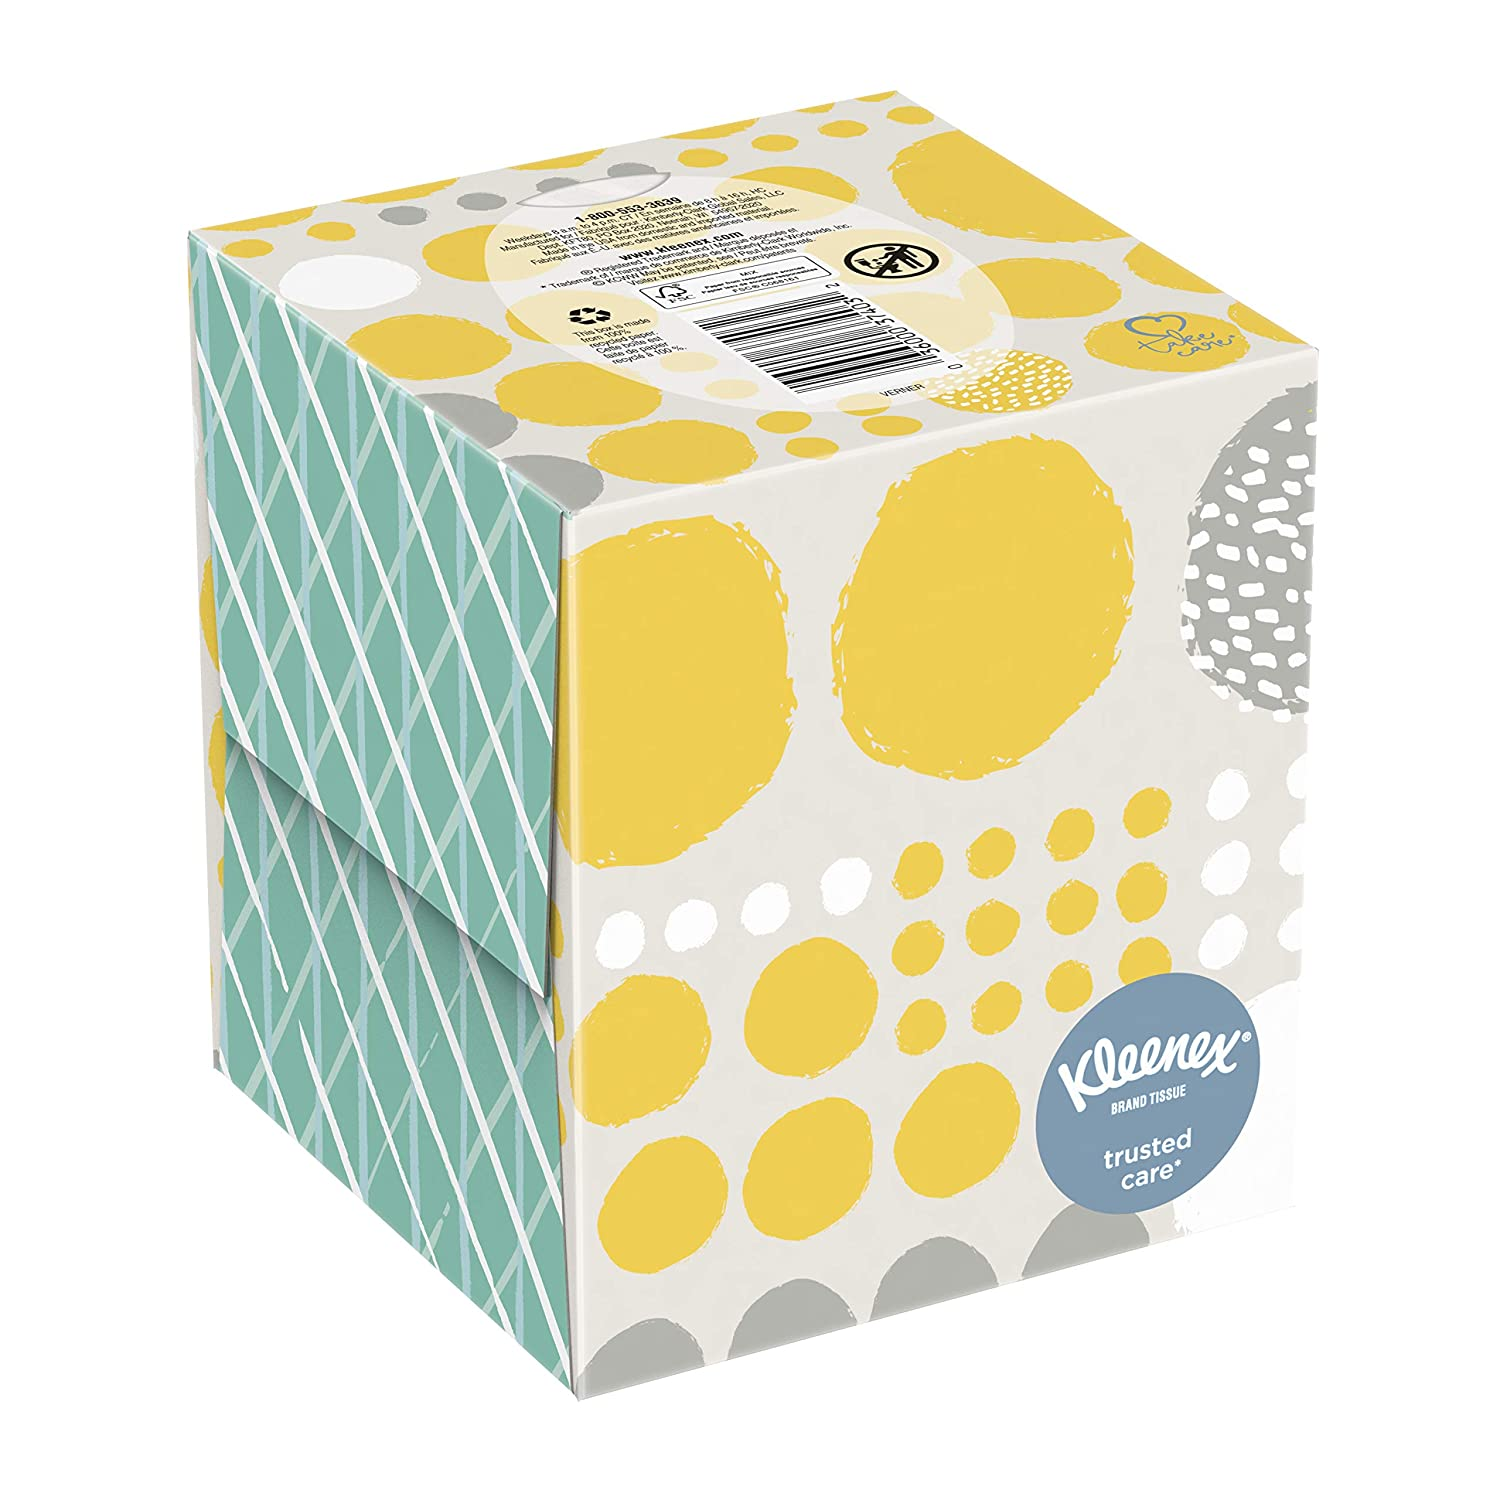 Kleenex Trusted Care Everyday Facial Tissues